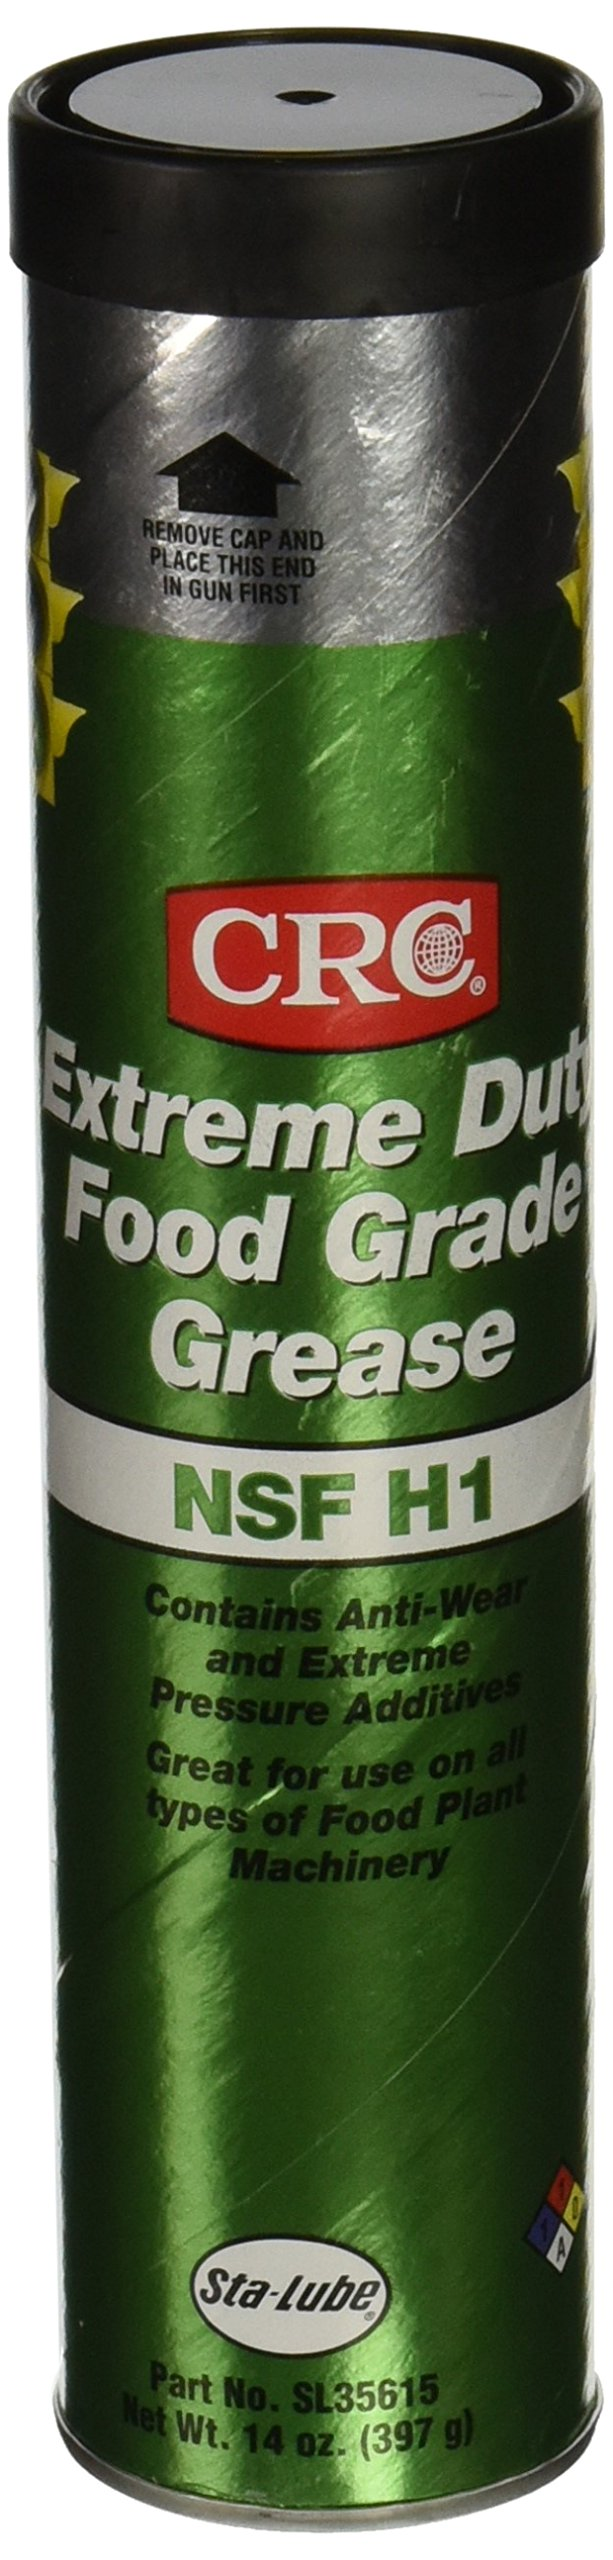 CRC SL35615 Extreme Duty Food Grade Grease, 14 Ounce, Tan, Smooth Grease by CRC